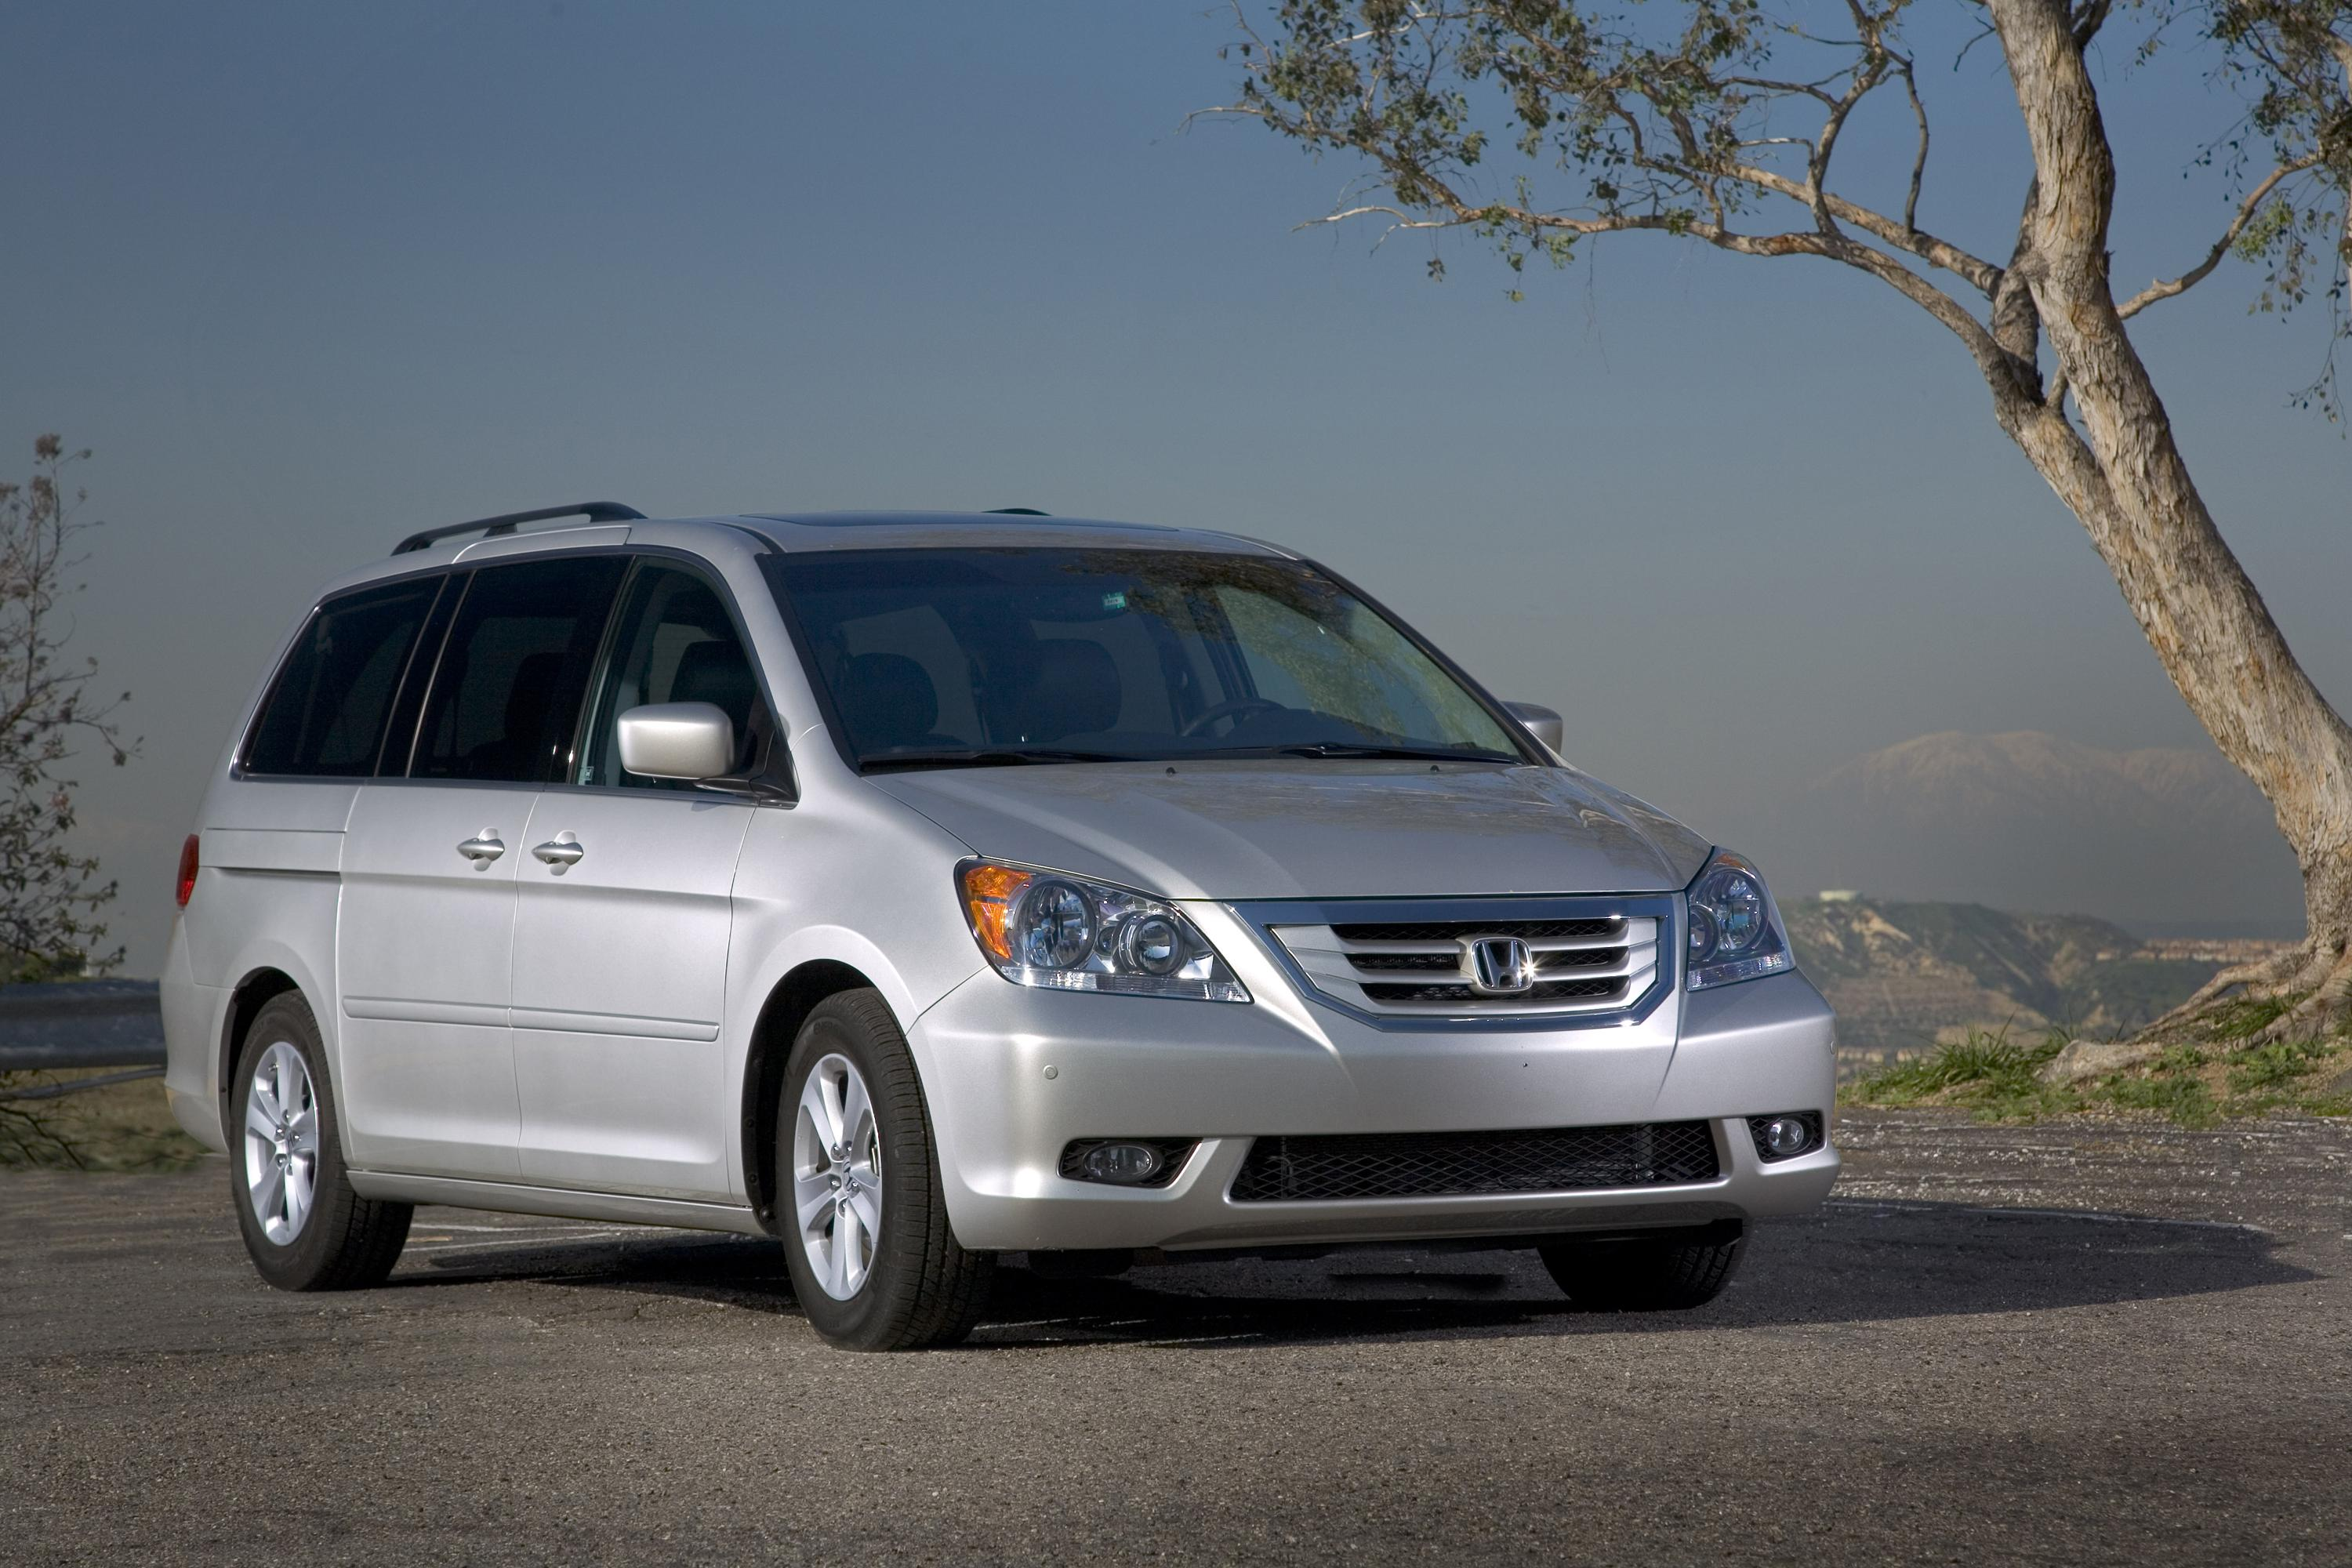 2009 honda odyssey offers efficient performance and for Honda odyssey magic seat